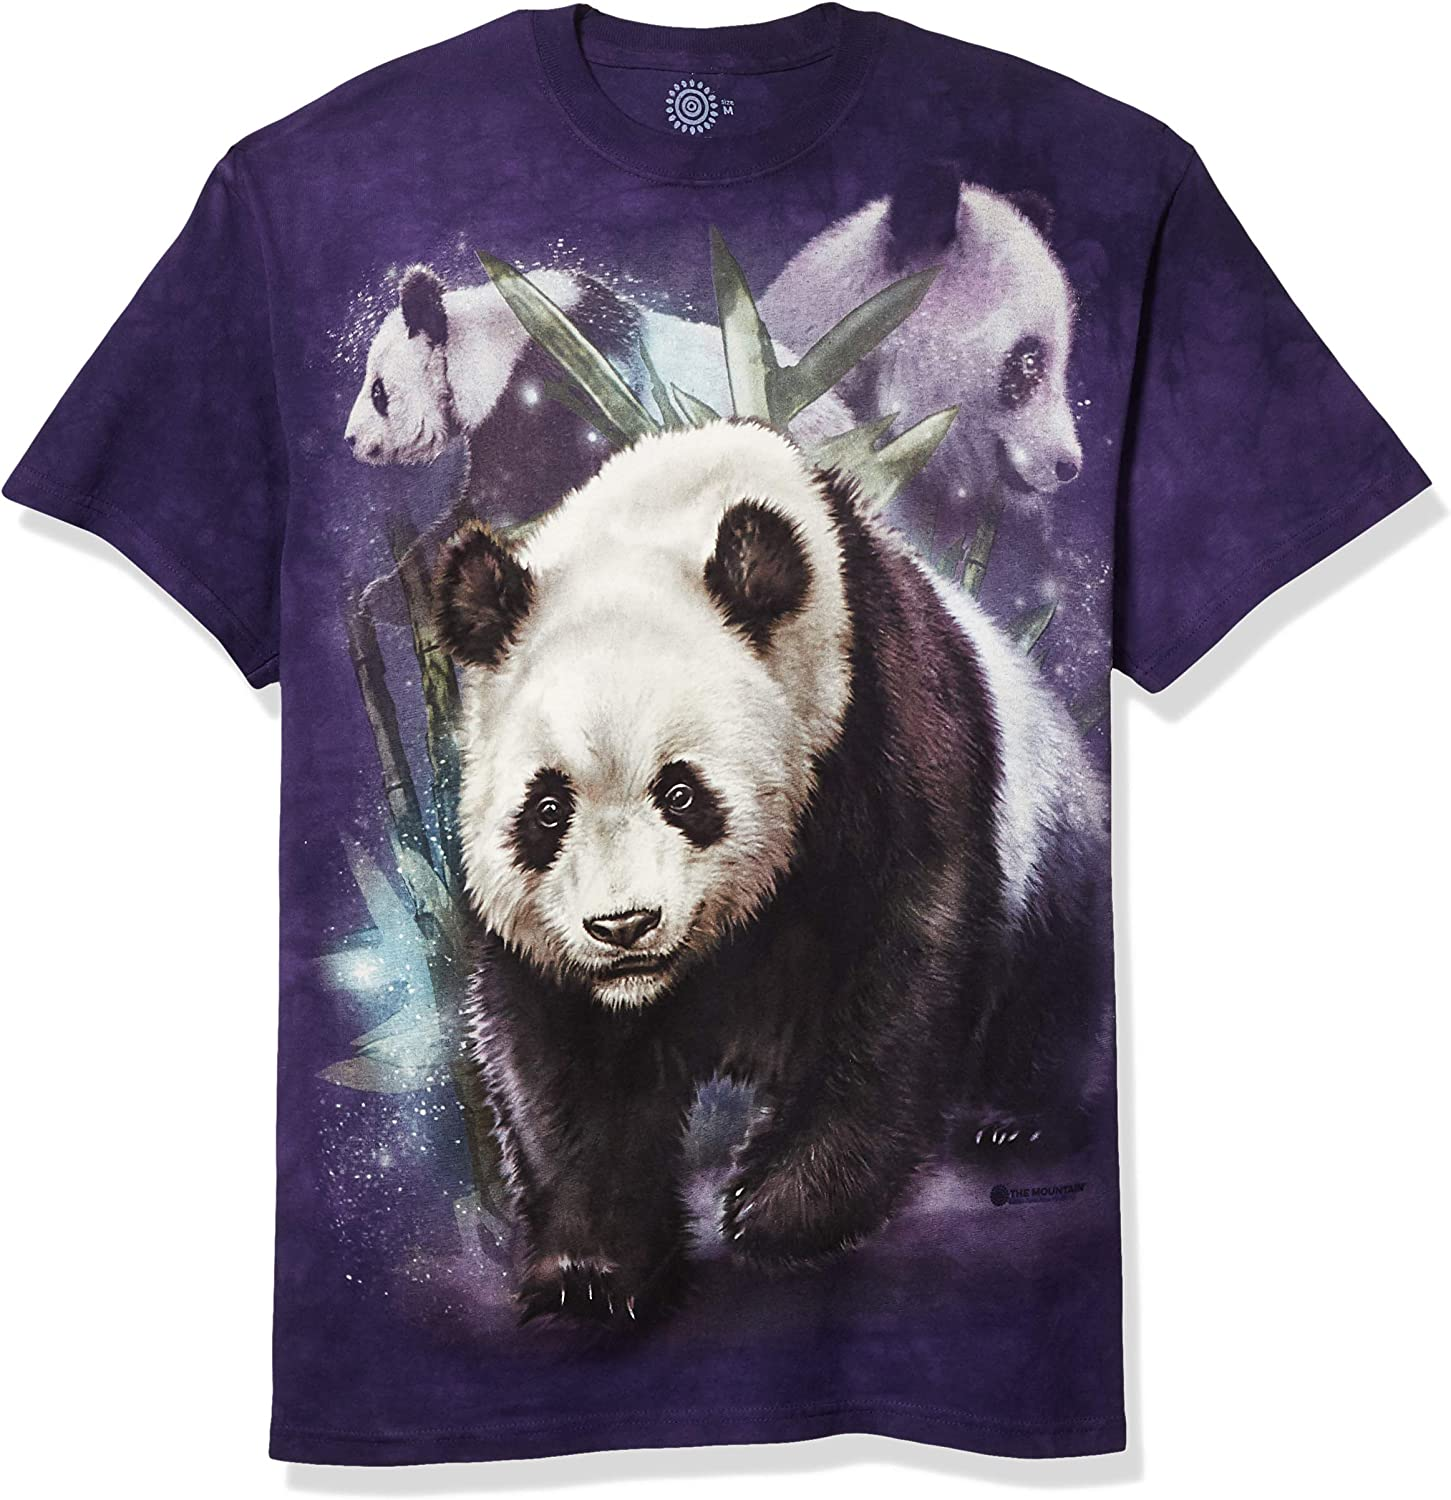 The Mountain Kids Panda Excellent Fashionable Collage T-Shirt